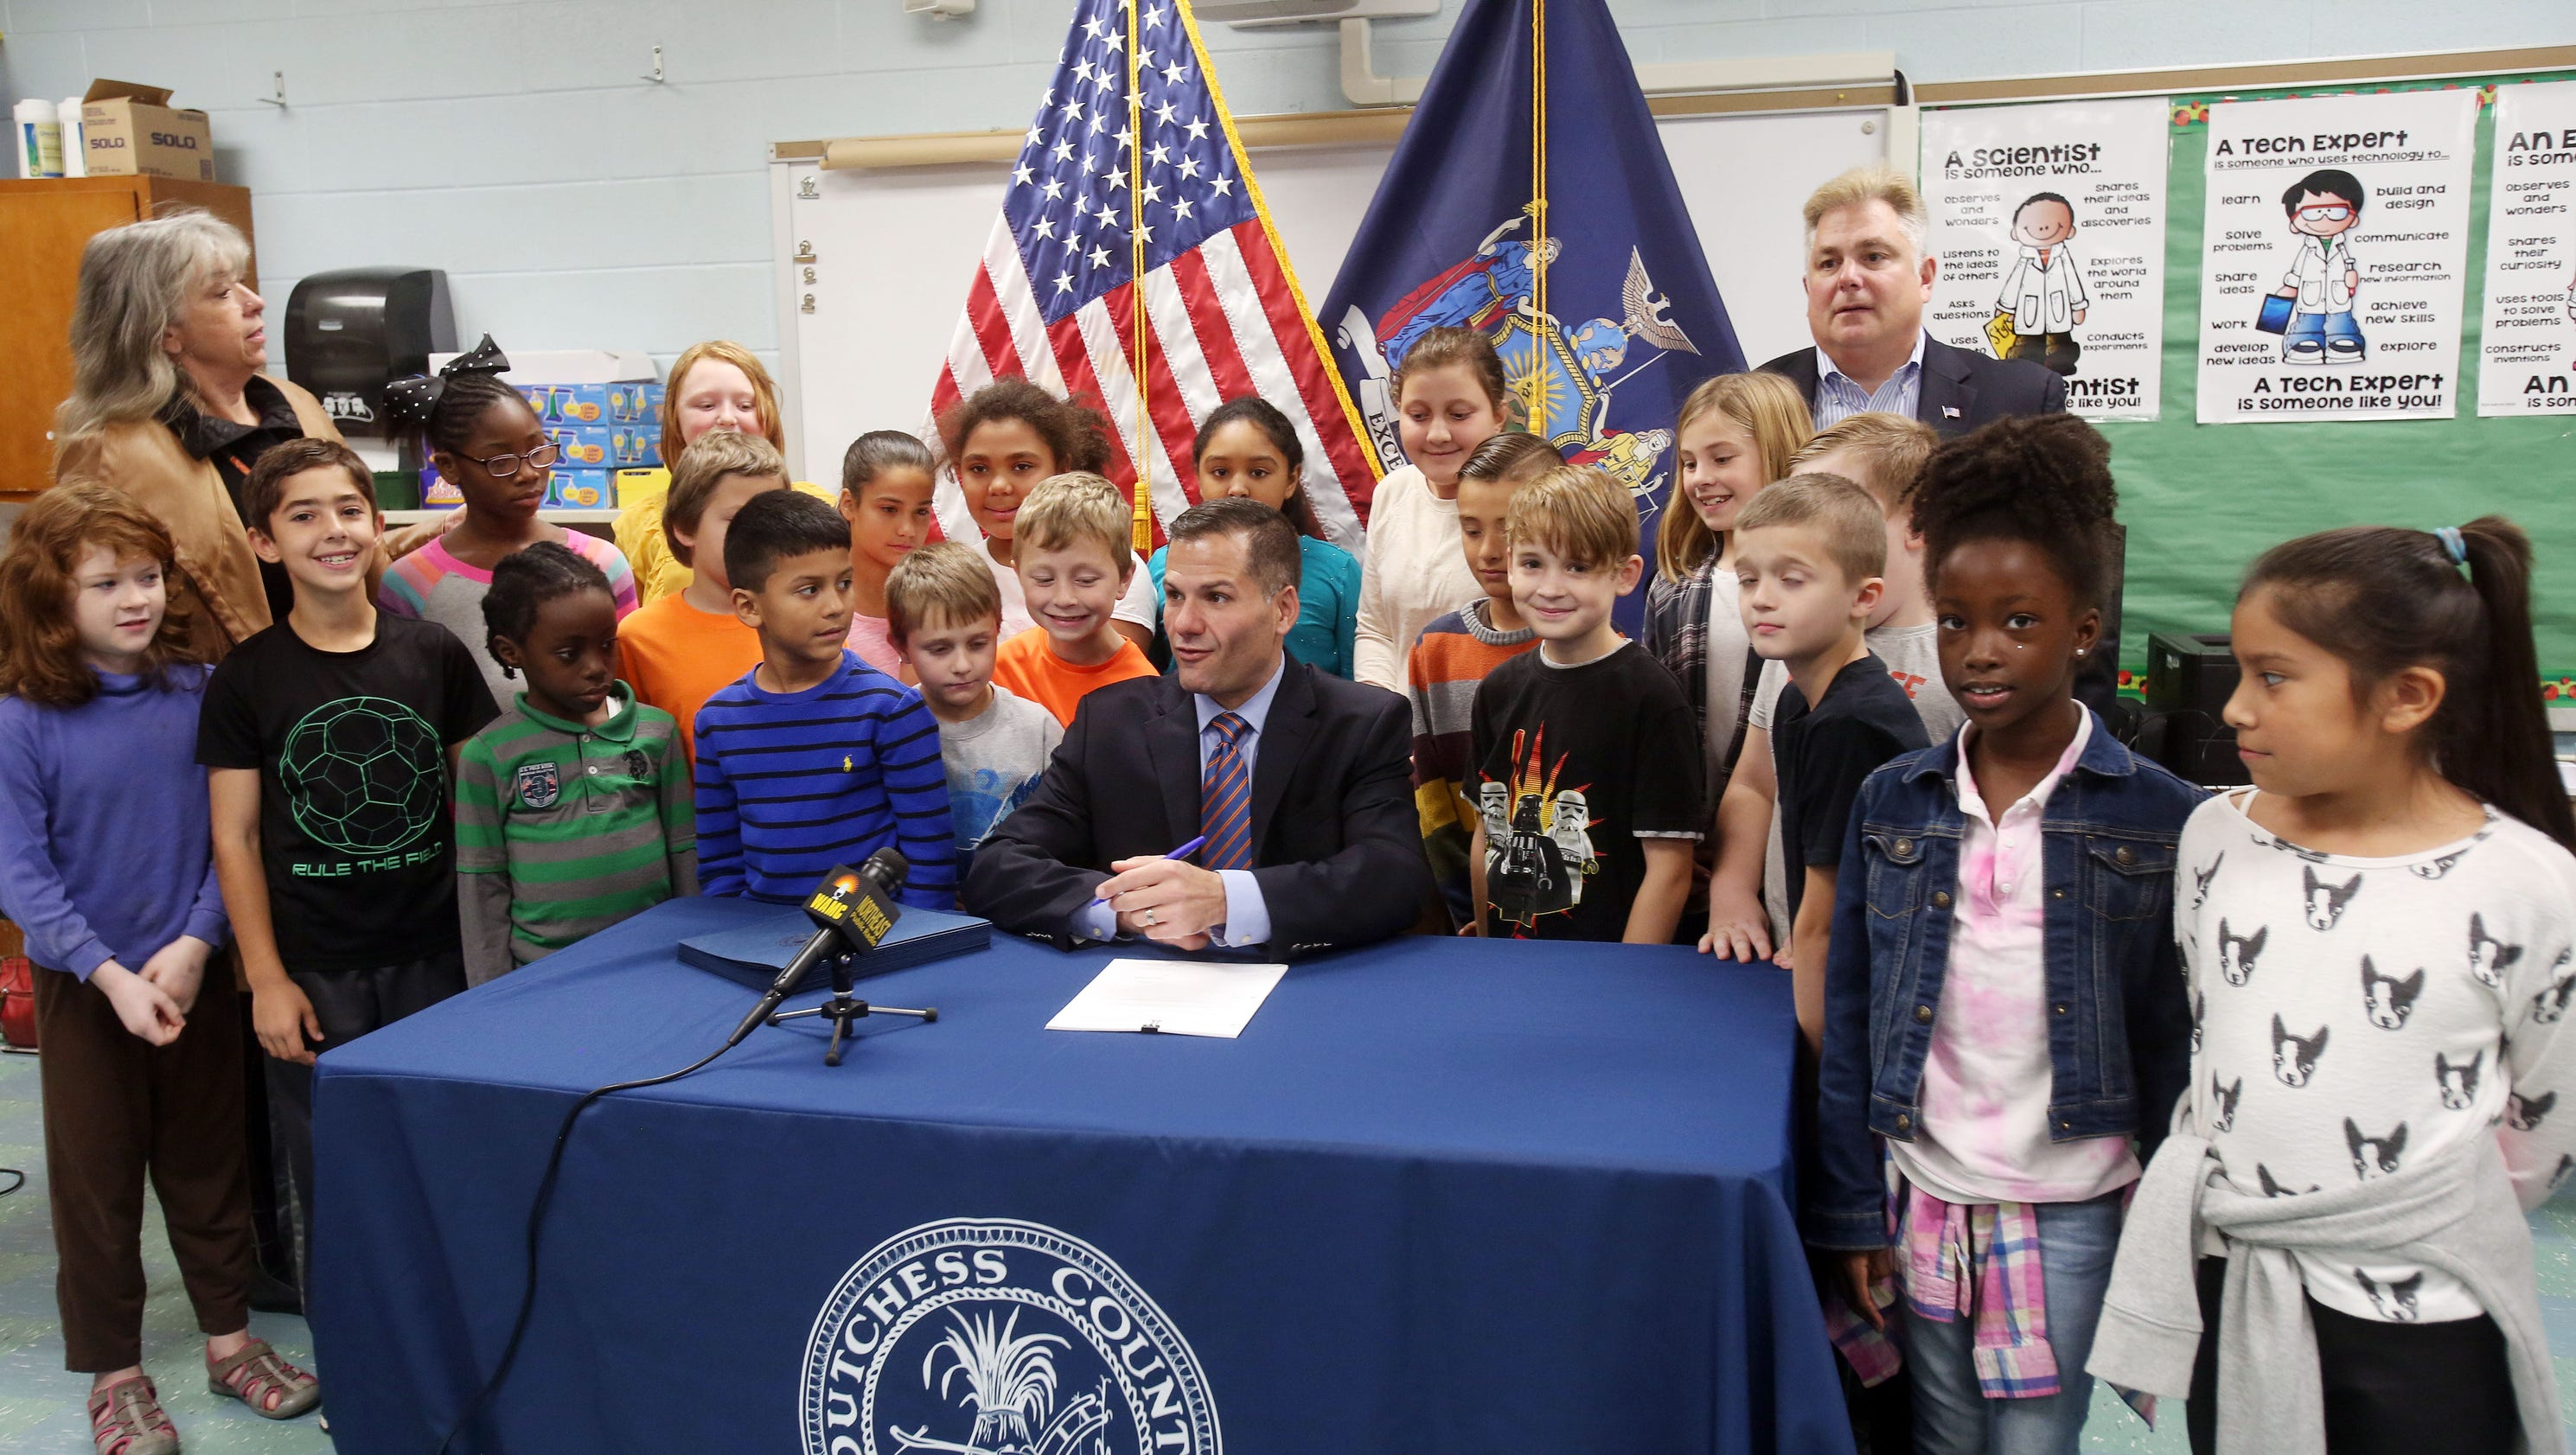 3rd-grade class project leads to polystyrene foam cup ban in N.Y. county